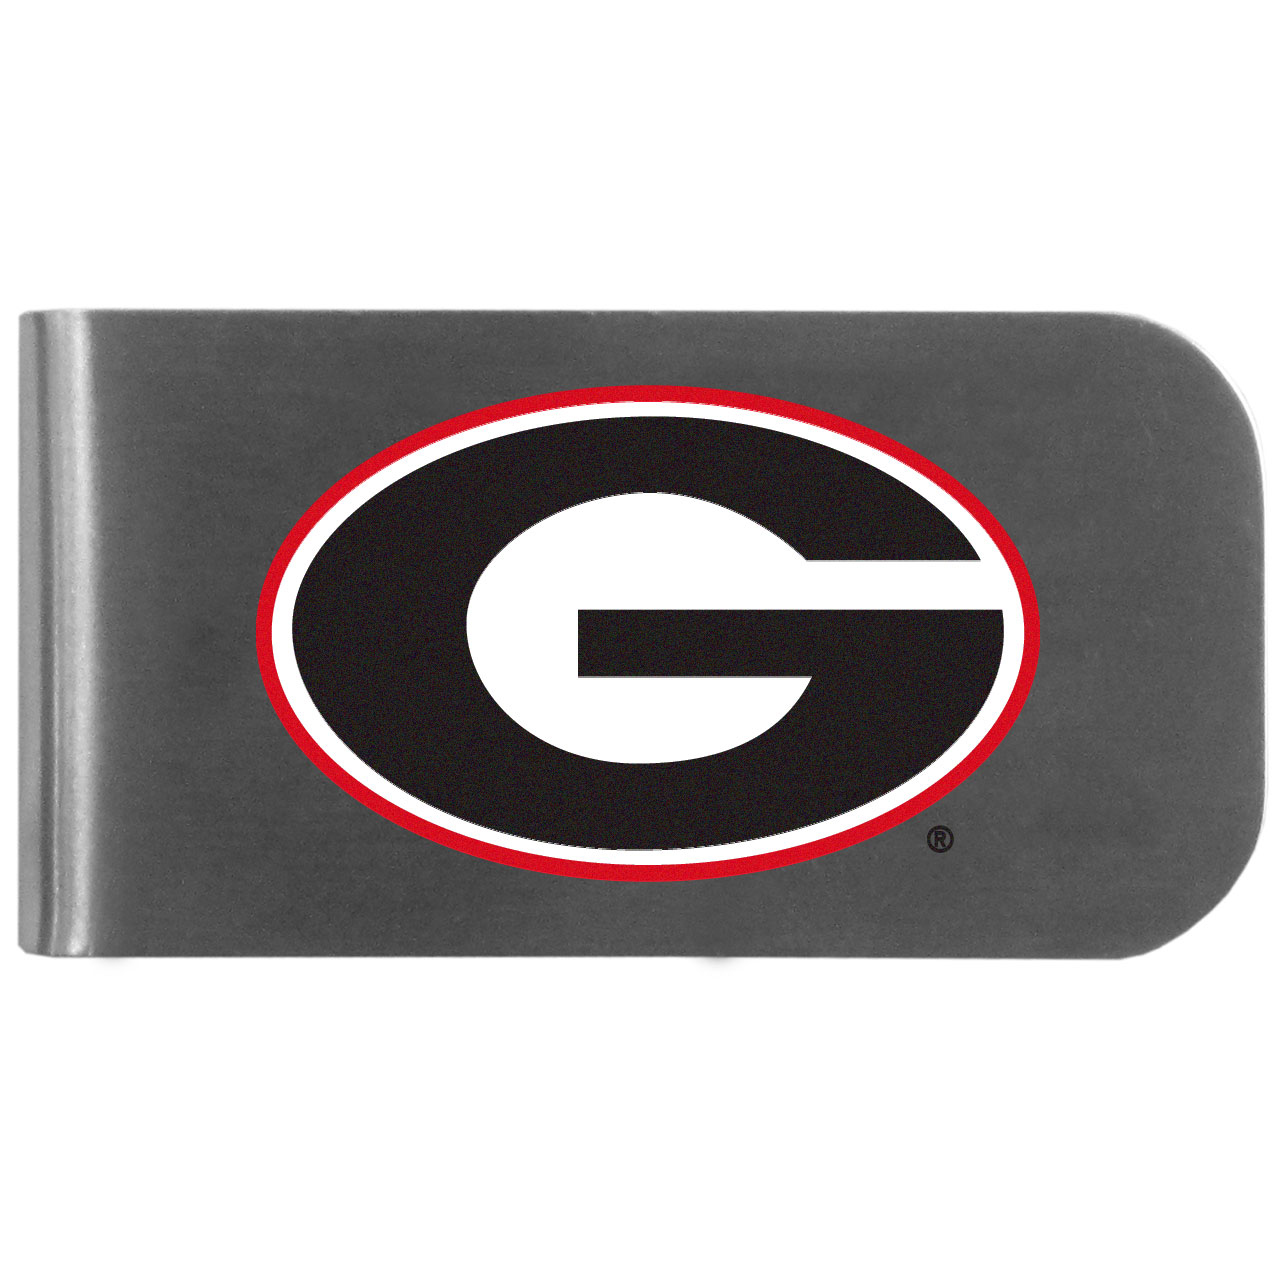 Georgia Bulldogs Logo Bottle Opener Money Clip - This unique money clip features a classic, brushed-metal finish with a handy bottle opener feature on the back. The clip has the Georgia Bulldogs logo expertly printed on the front of the clip.